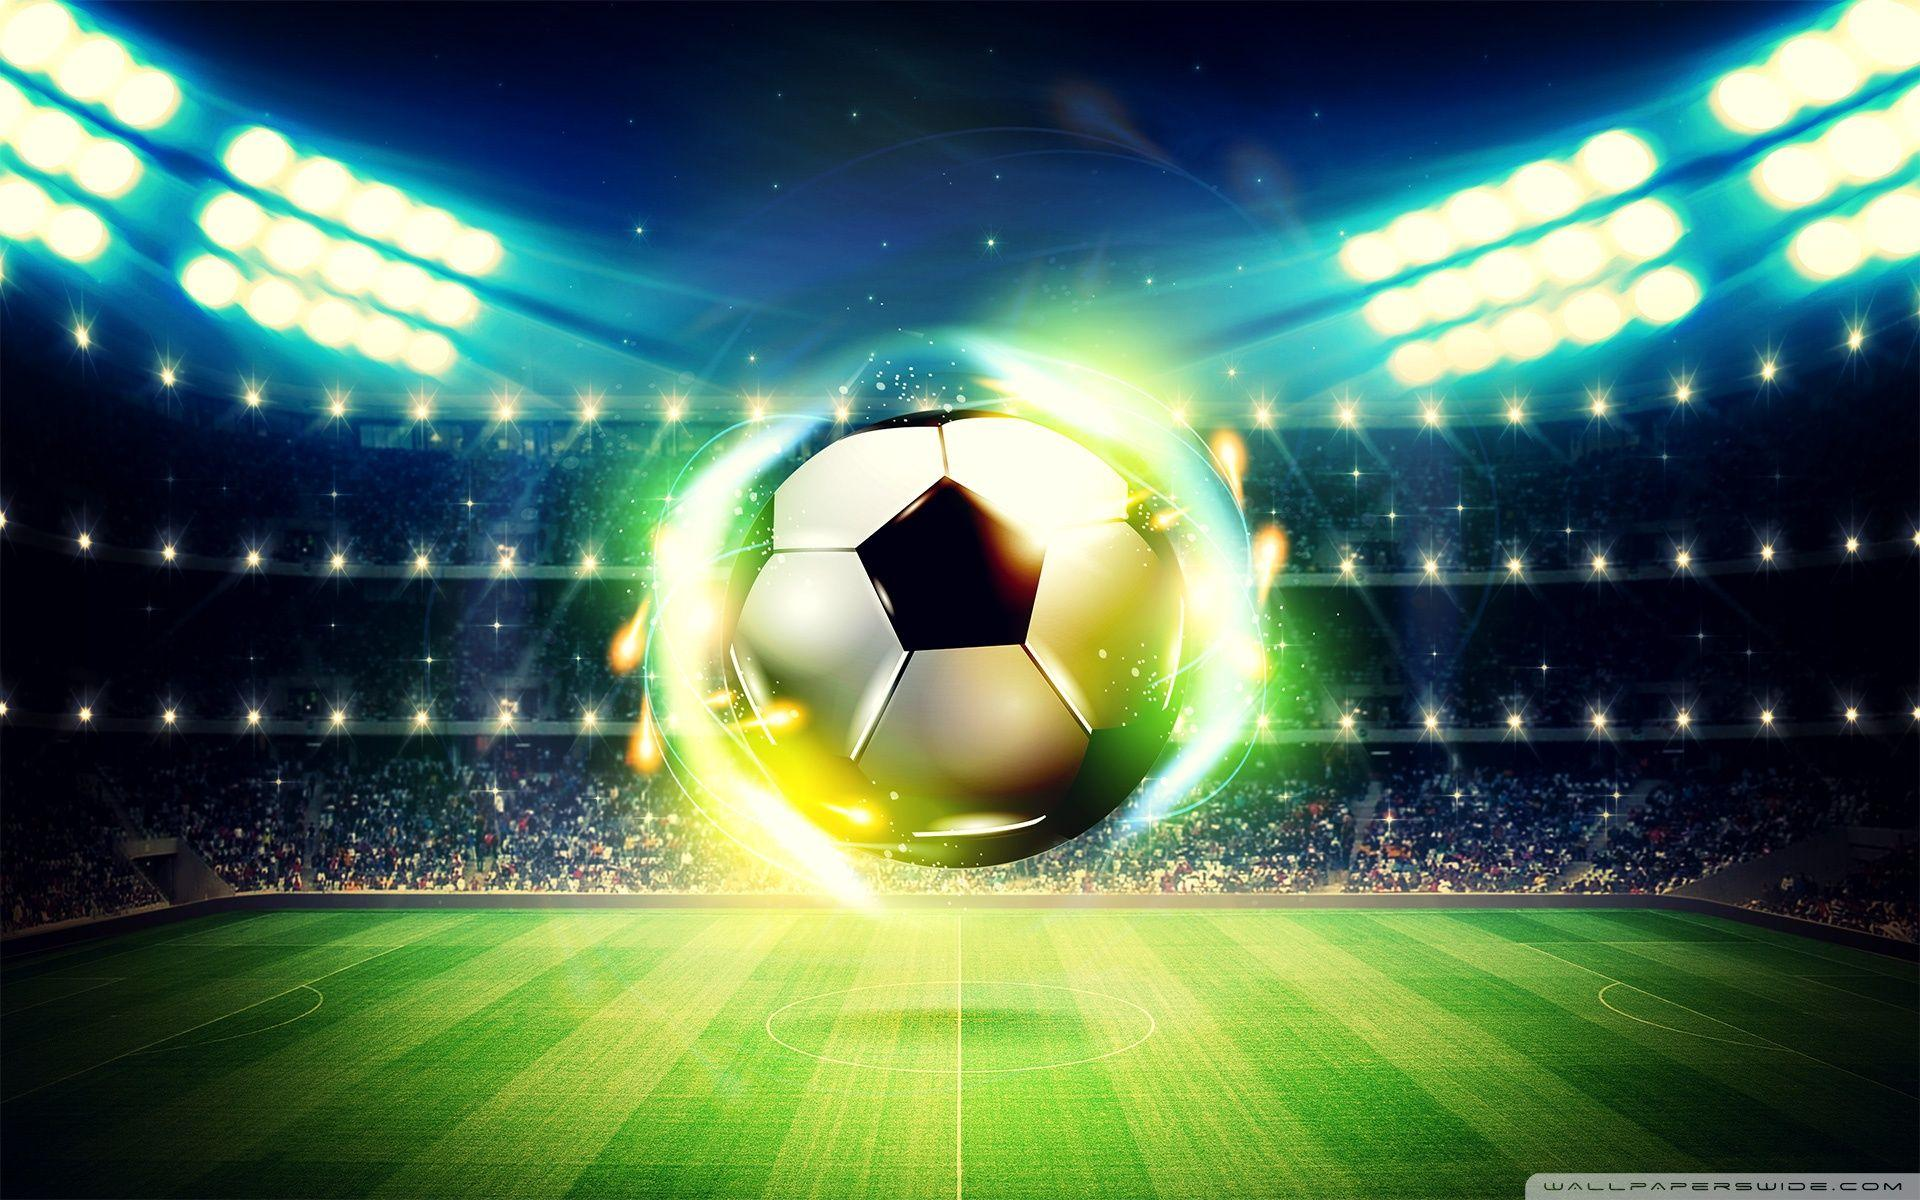 WallpapersWide.com ❤ football HD Wallpapers for 4K Ultra HD TV .